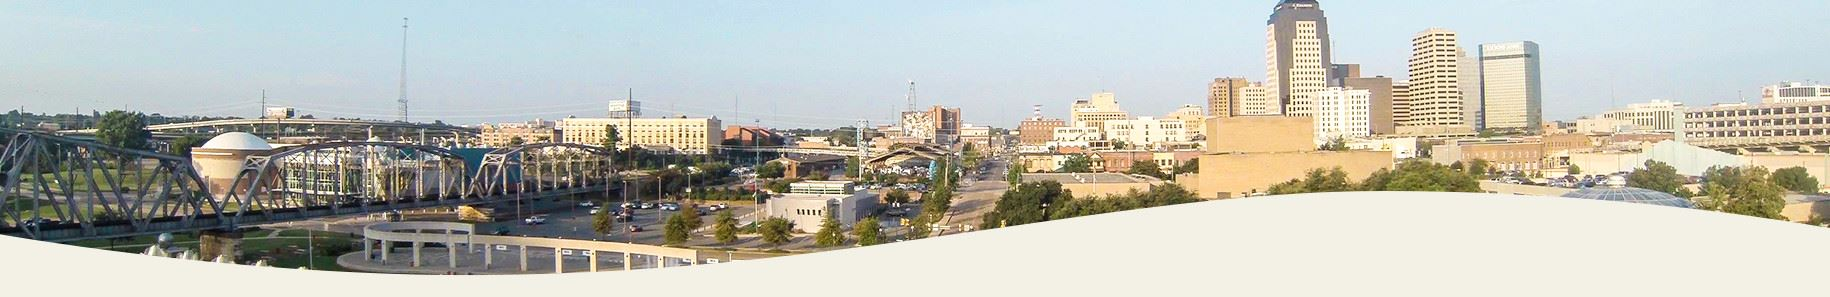 A panoramic view of downtown Shreveport